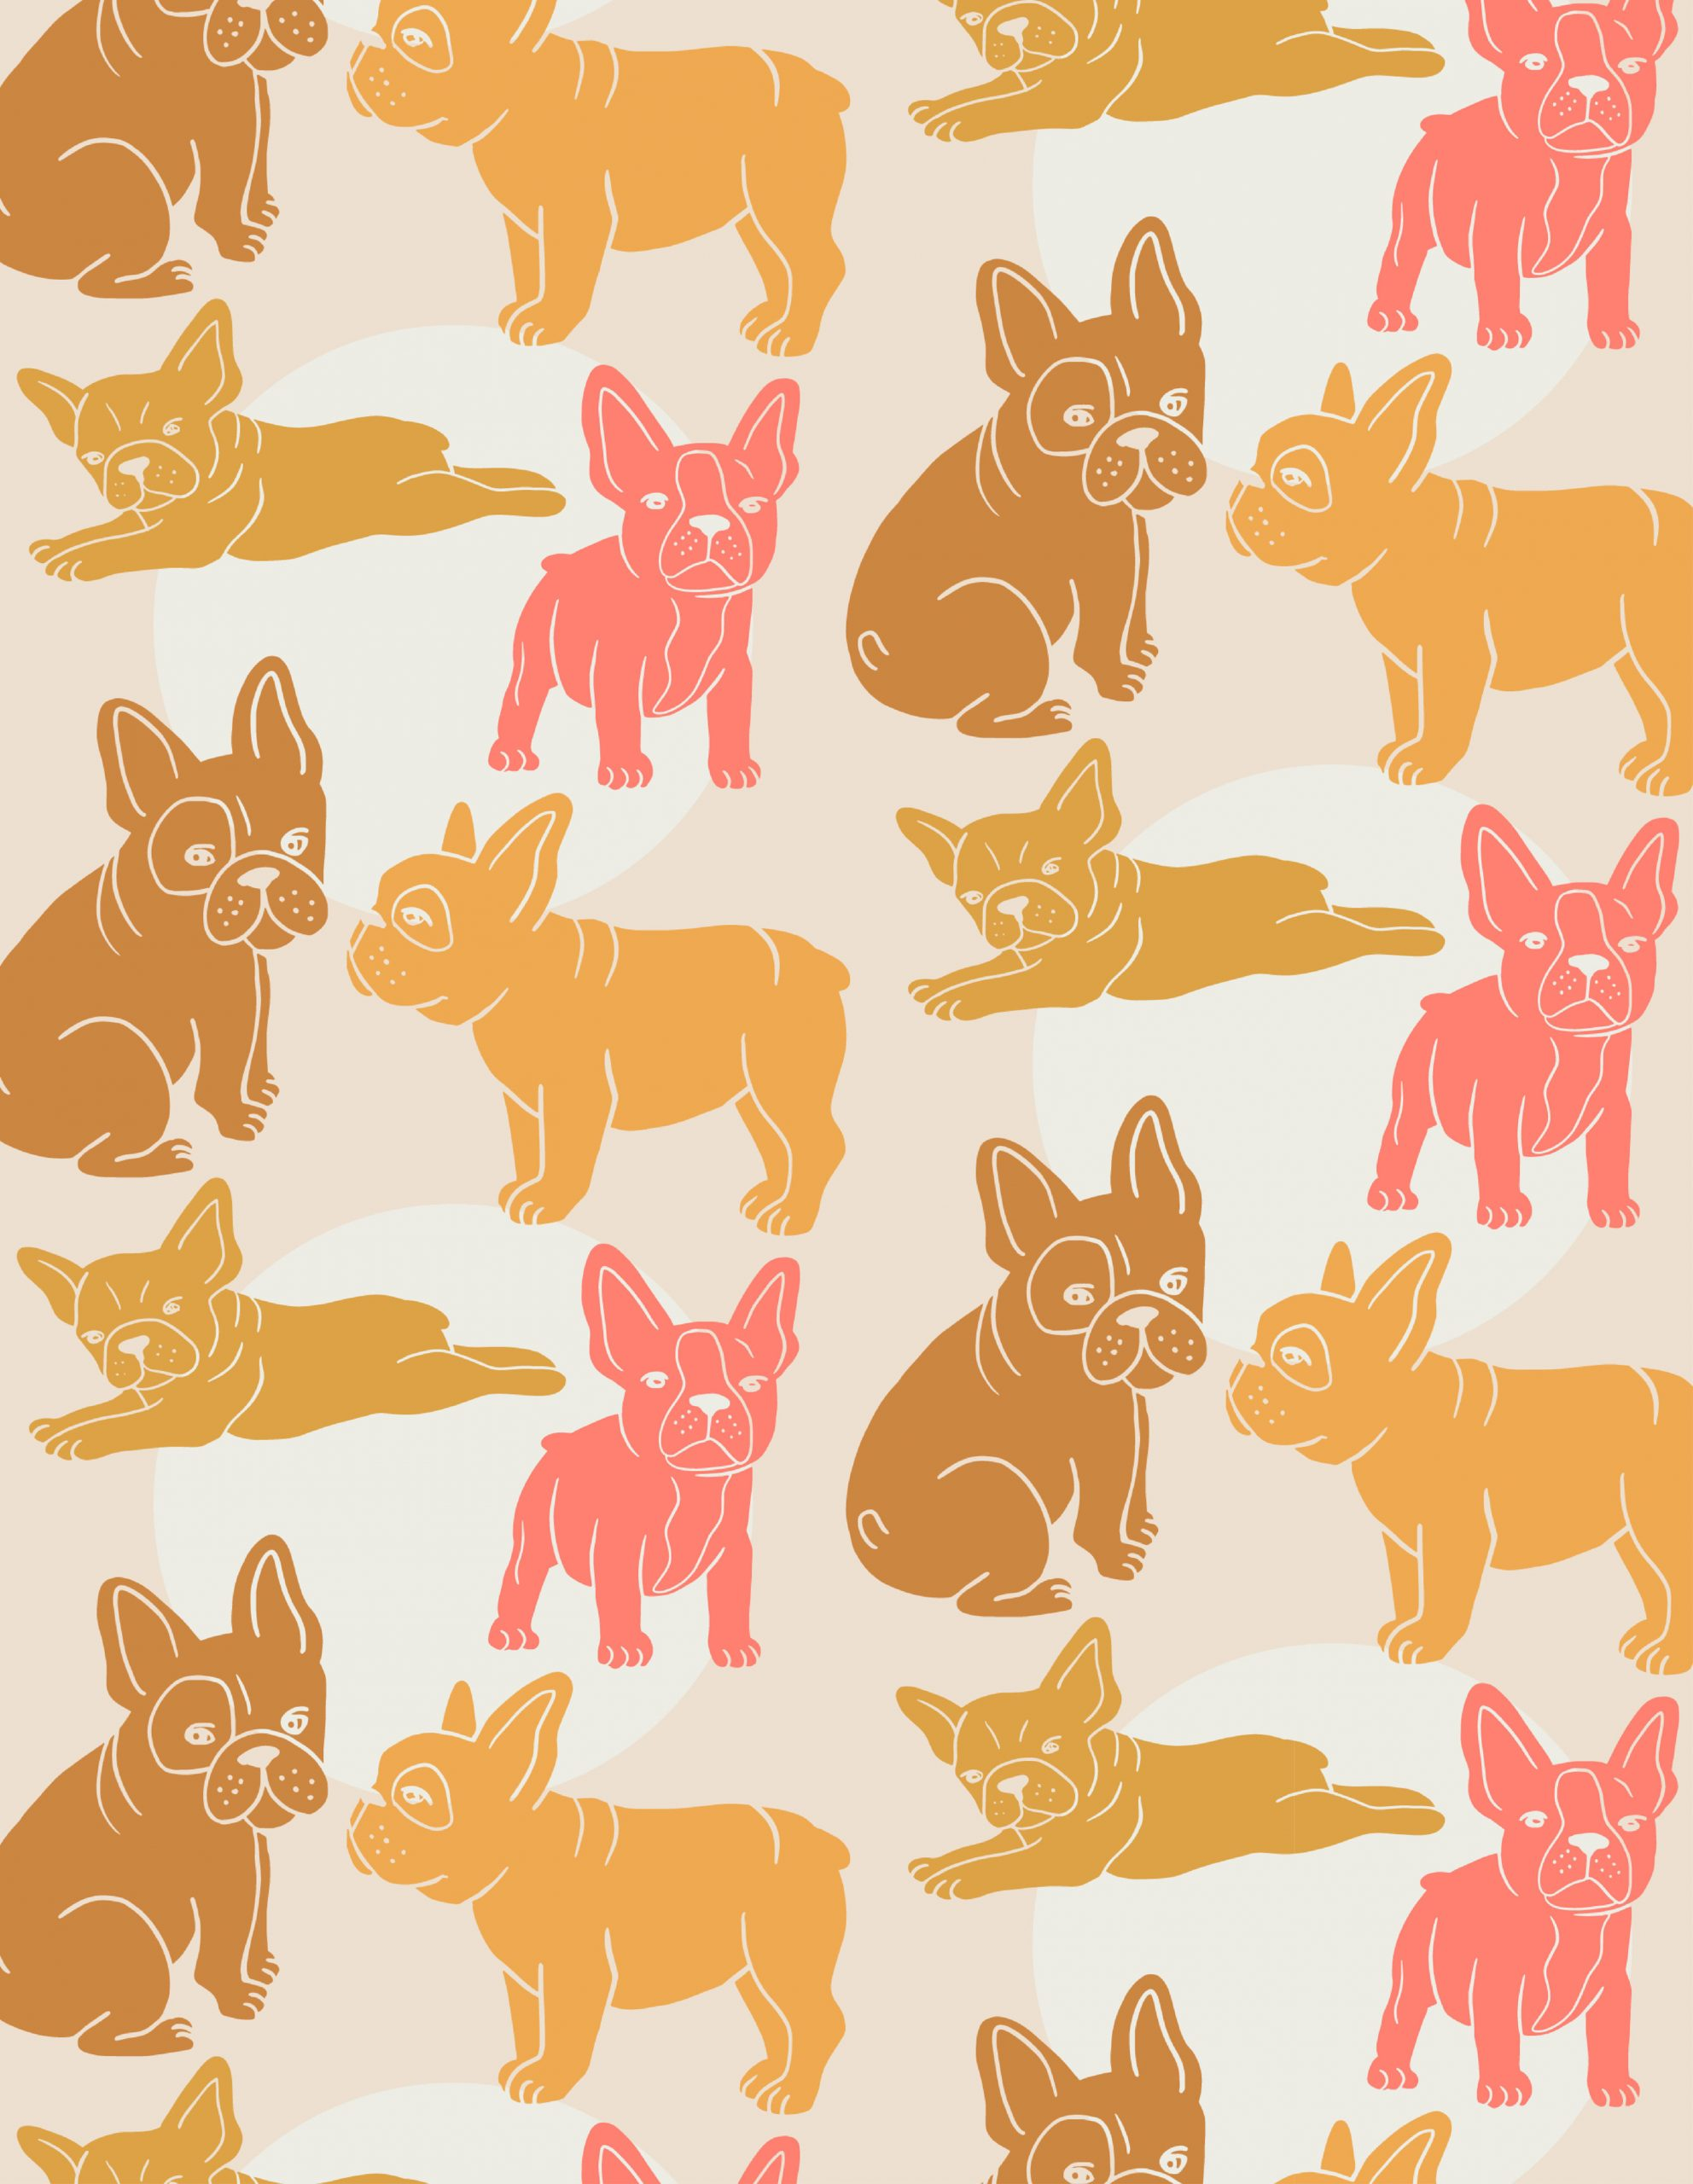 orange, yellow, pink bulldog illustration pattern